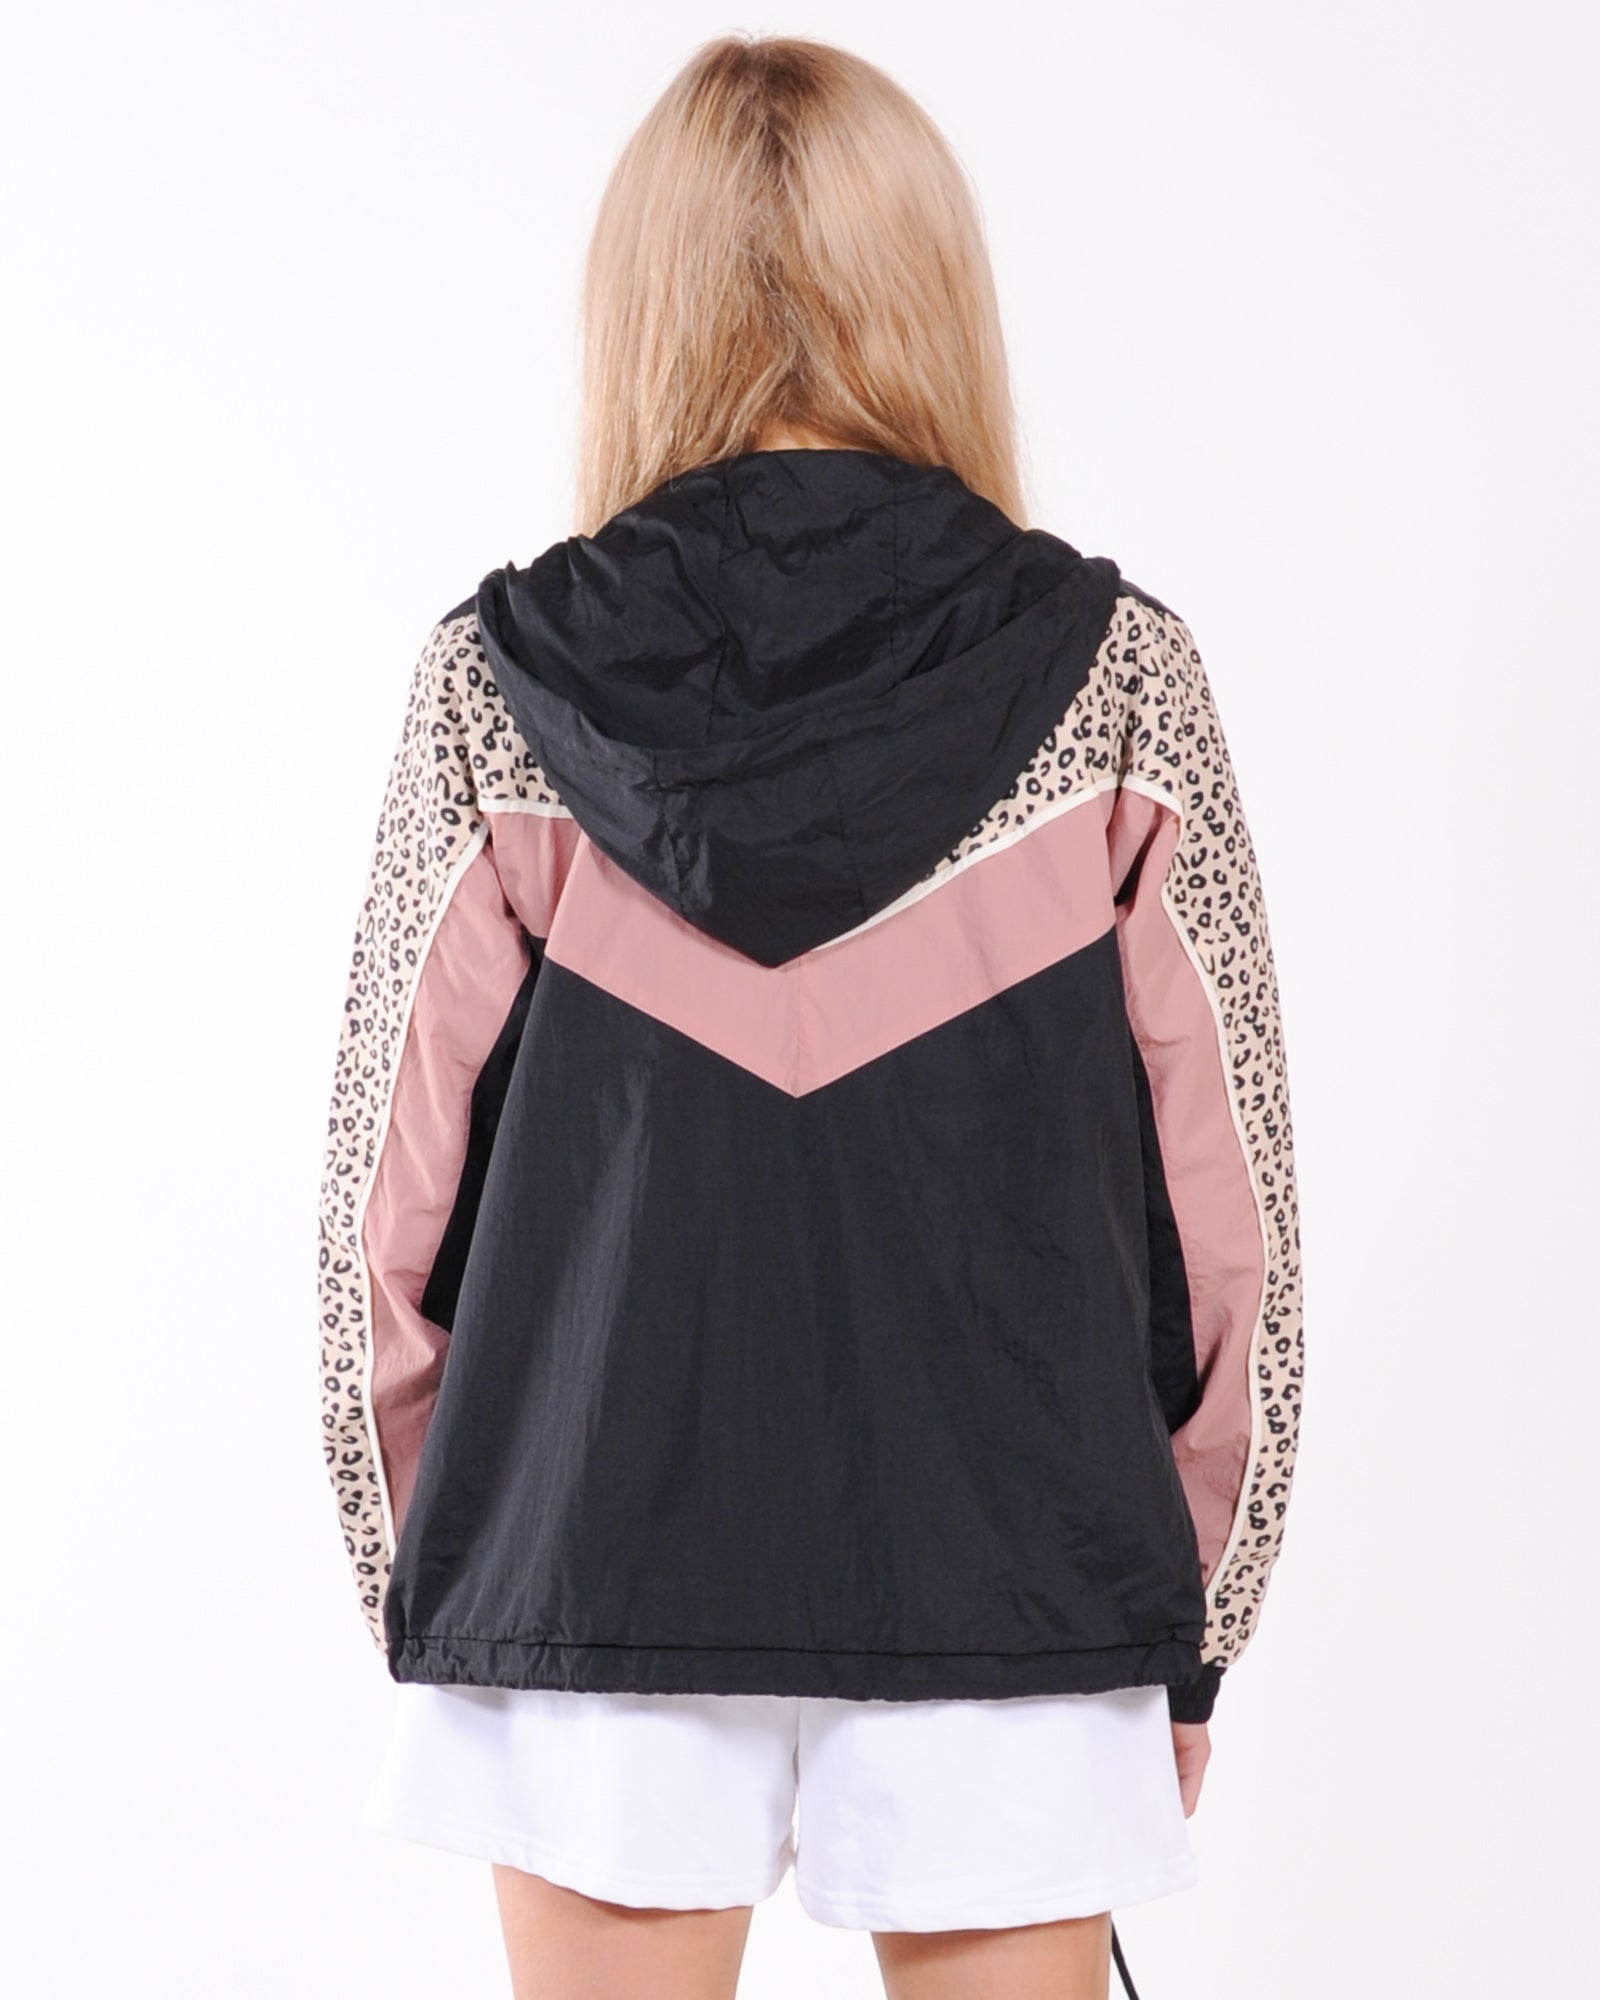 All About Eve Distinct Spray Jacket - Multi